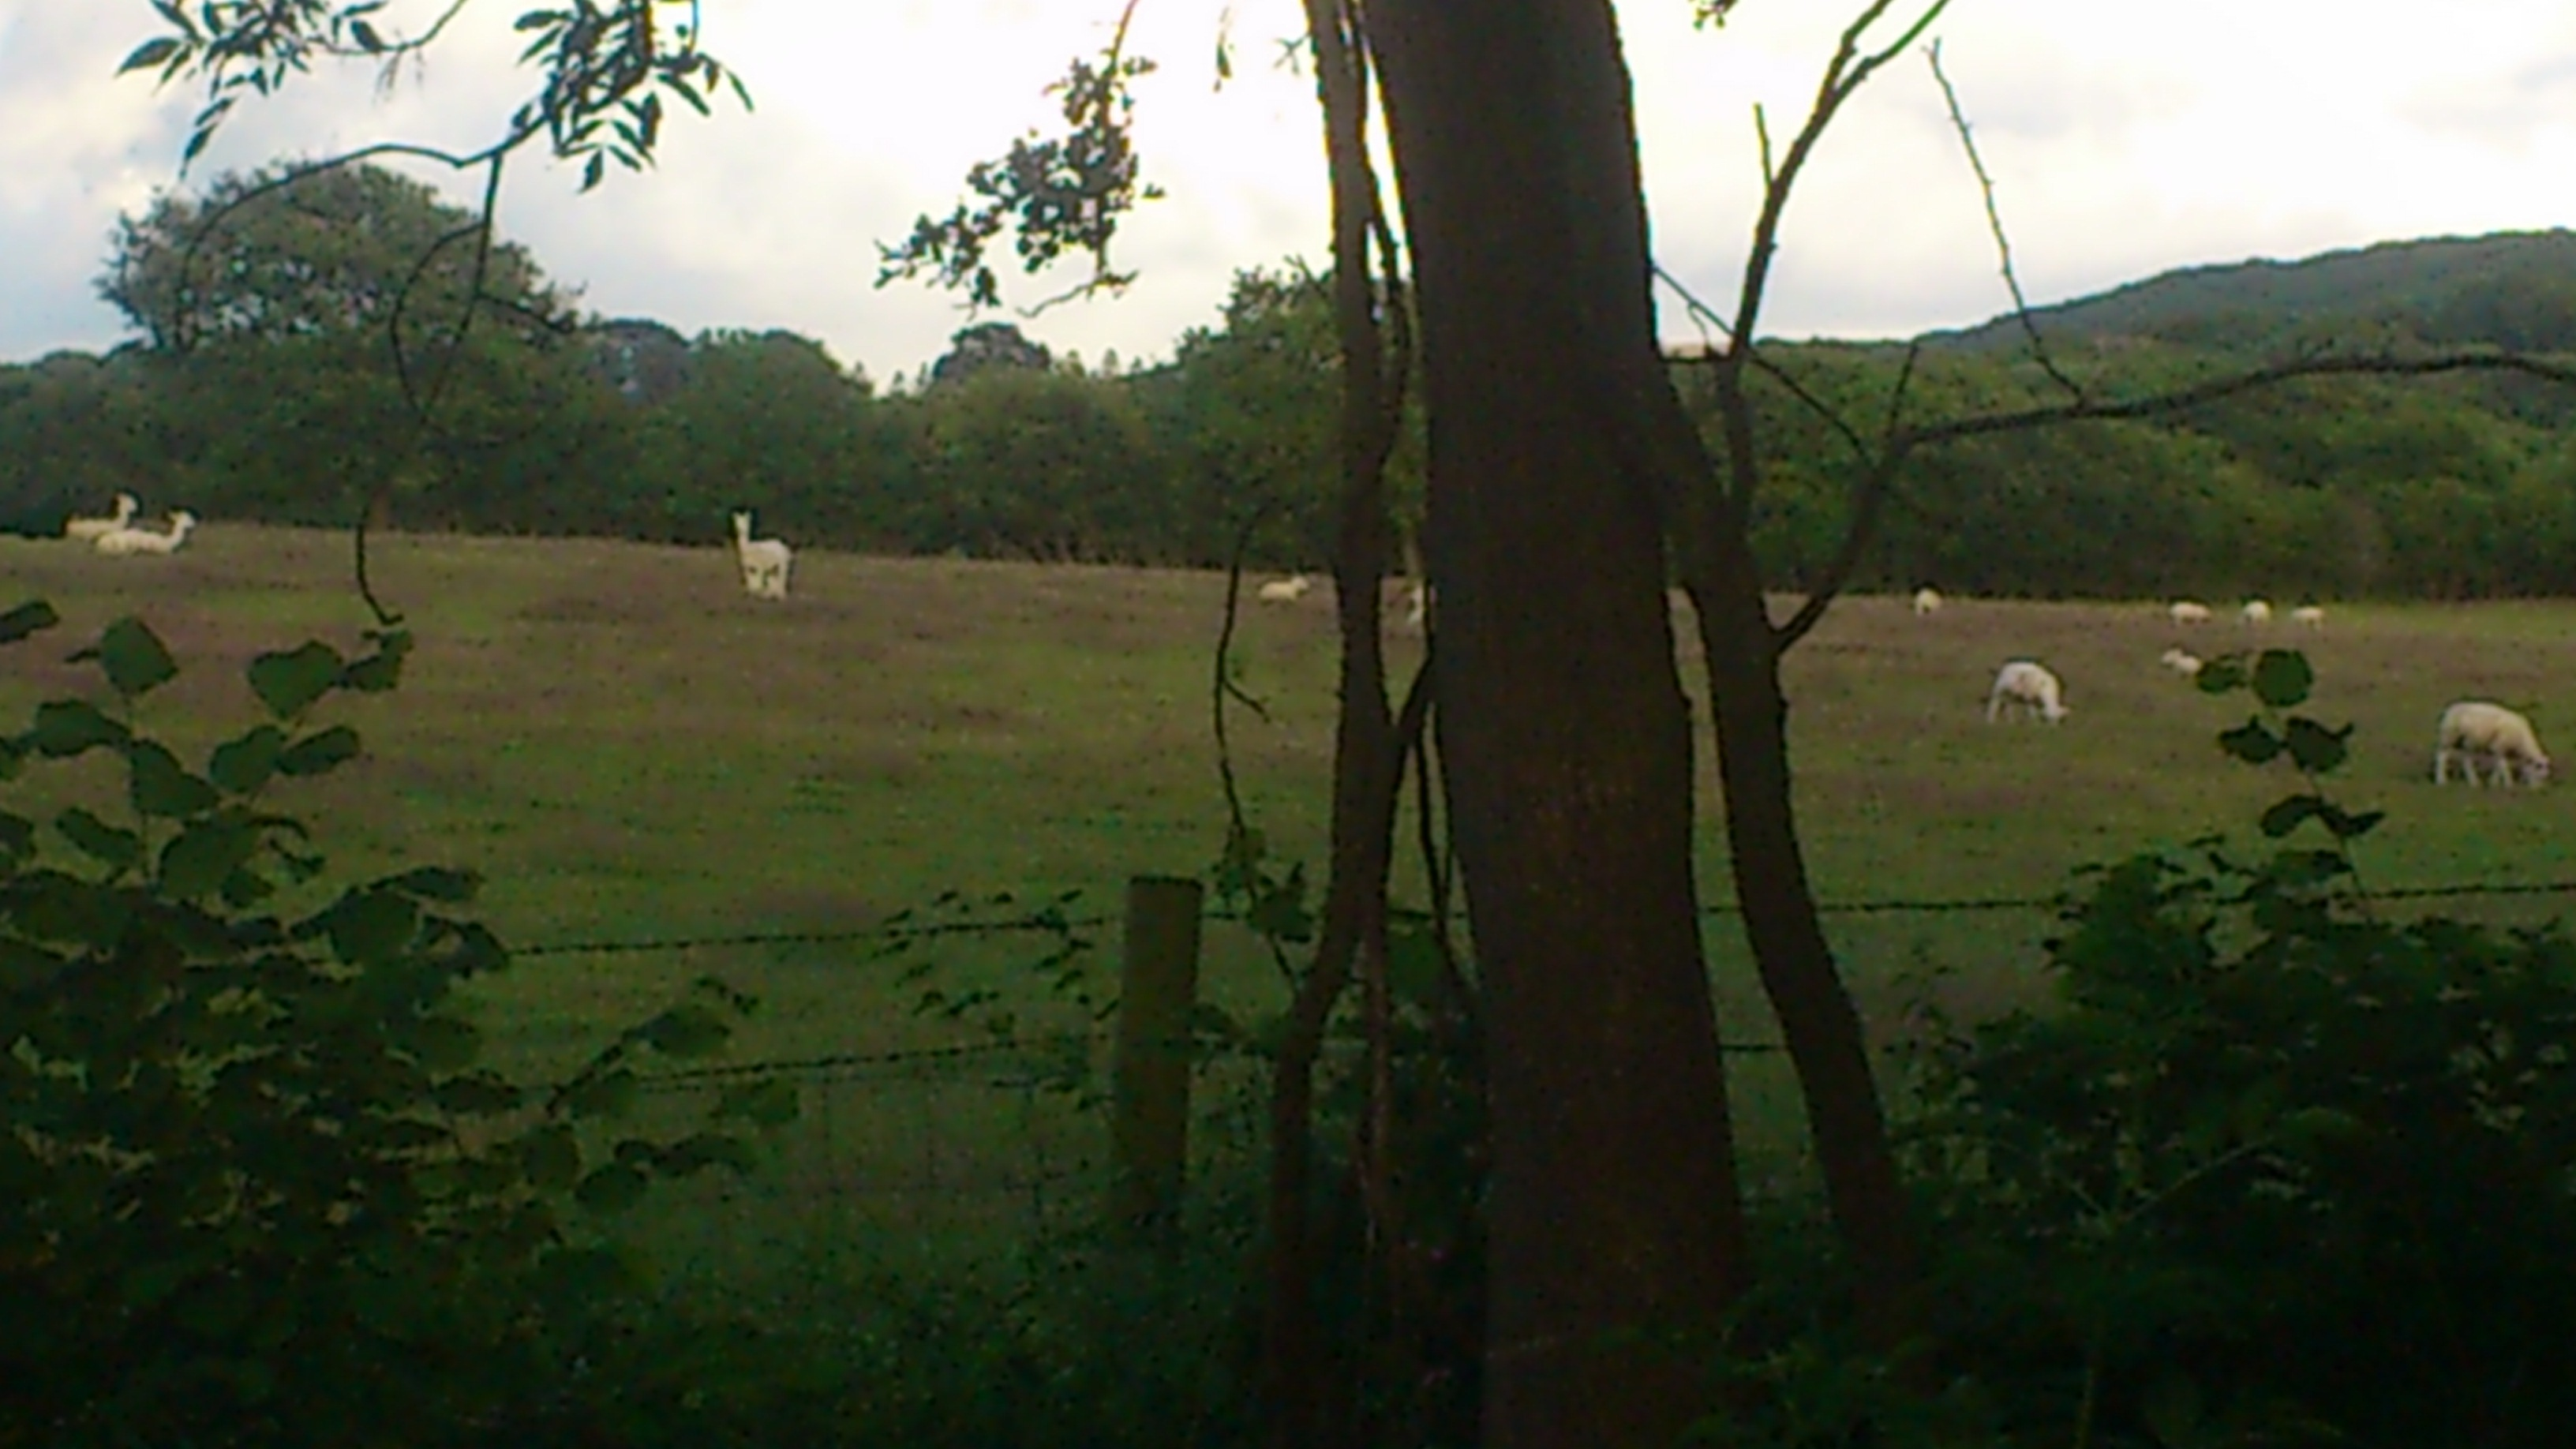 Long necked sheep in the field next to where I was camping.